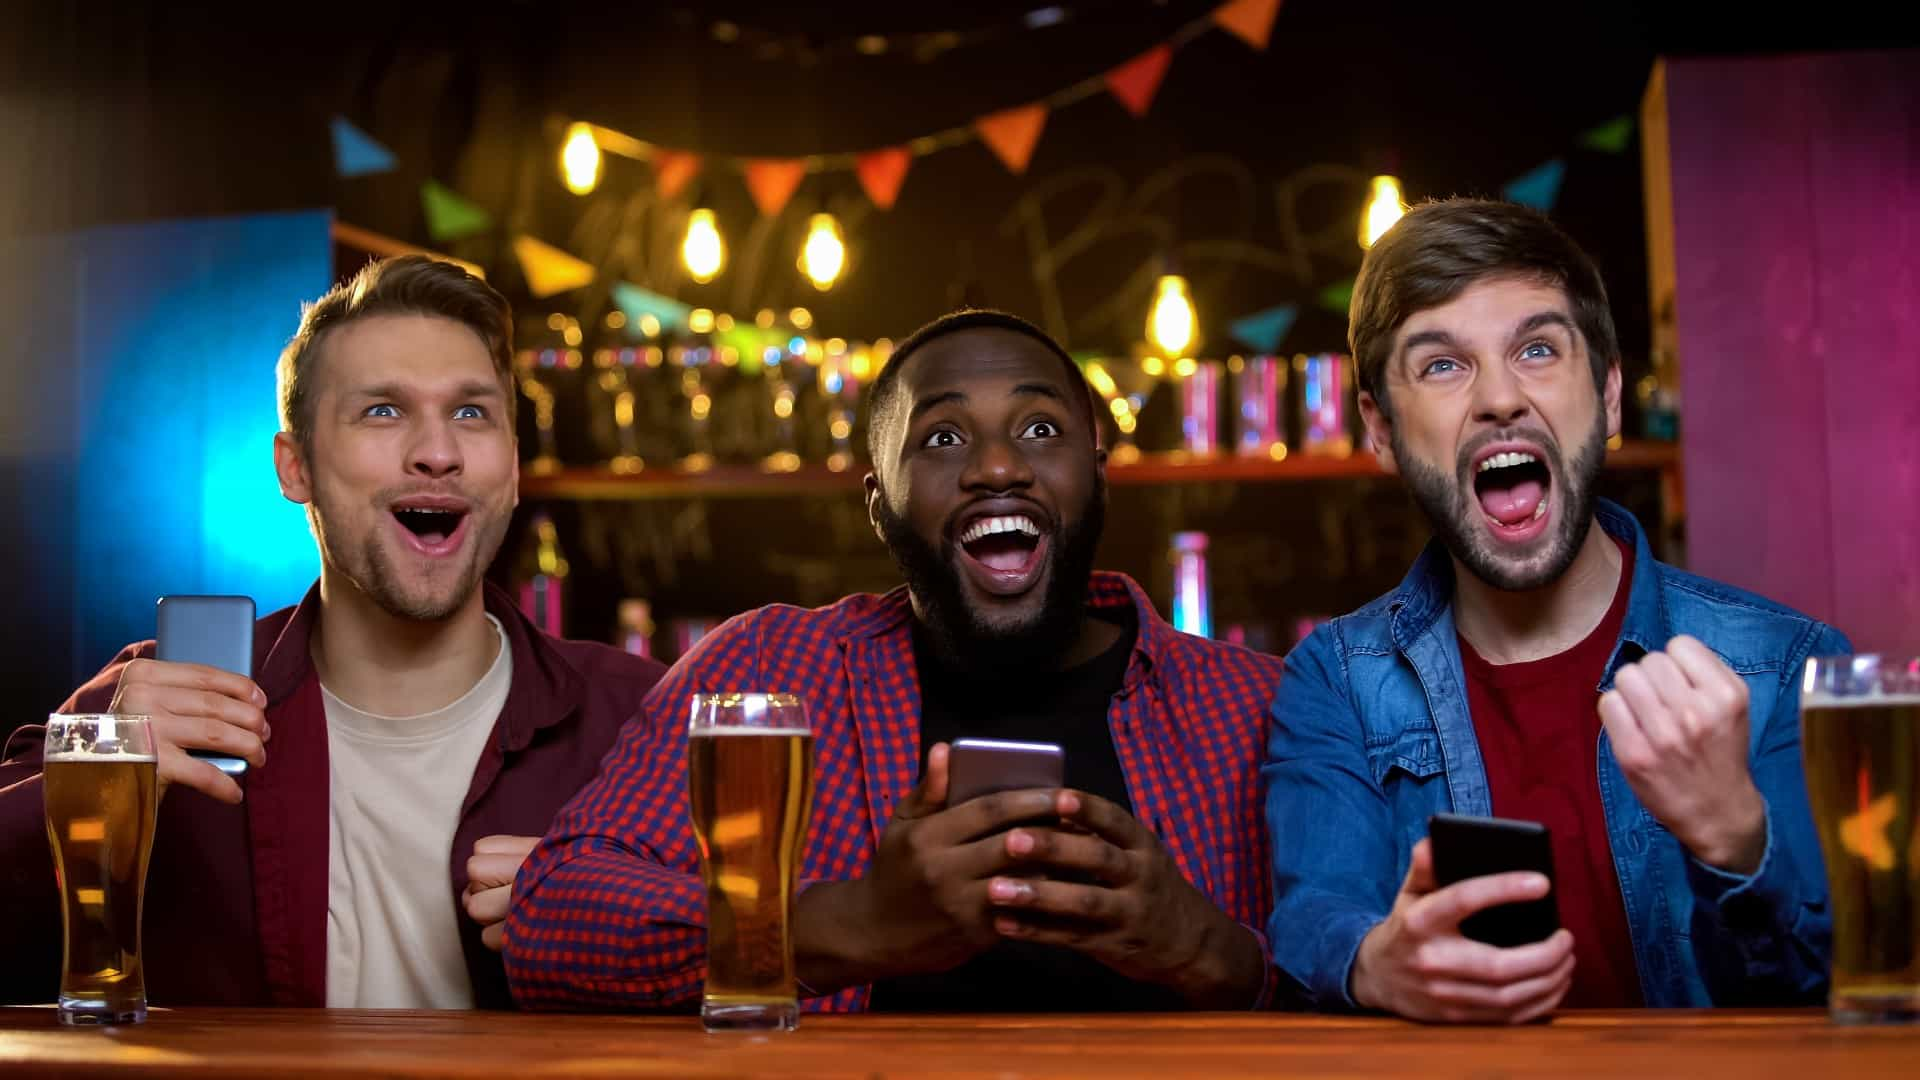 3 men at bar betting on sports online 16.9